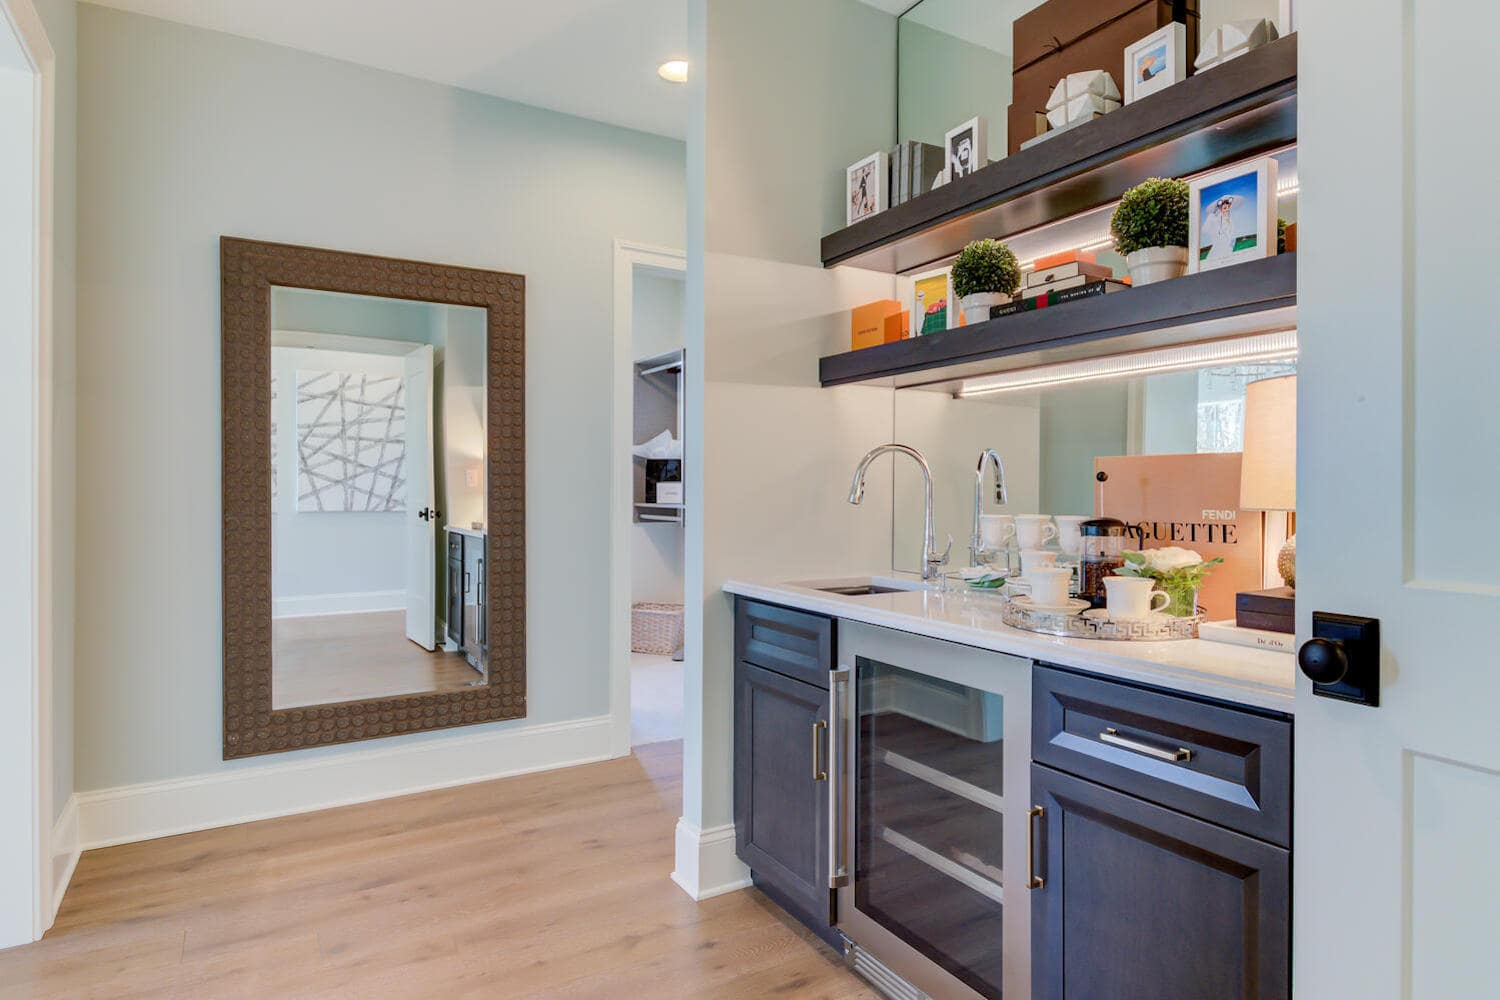 Interior image of a new home from Bentley Homes.